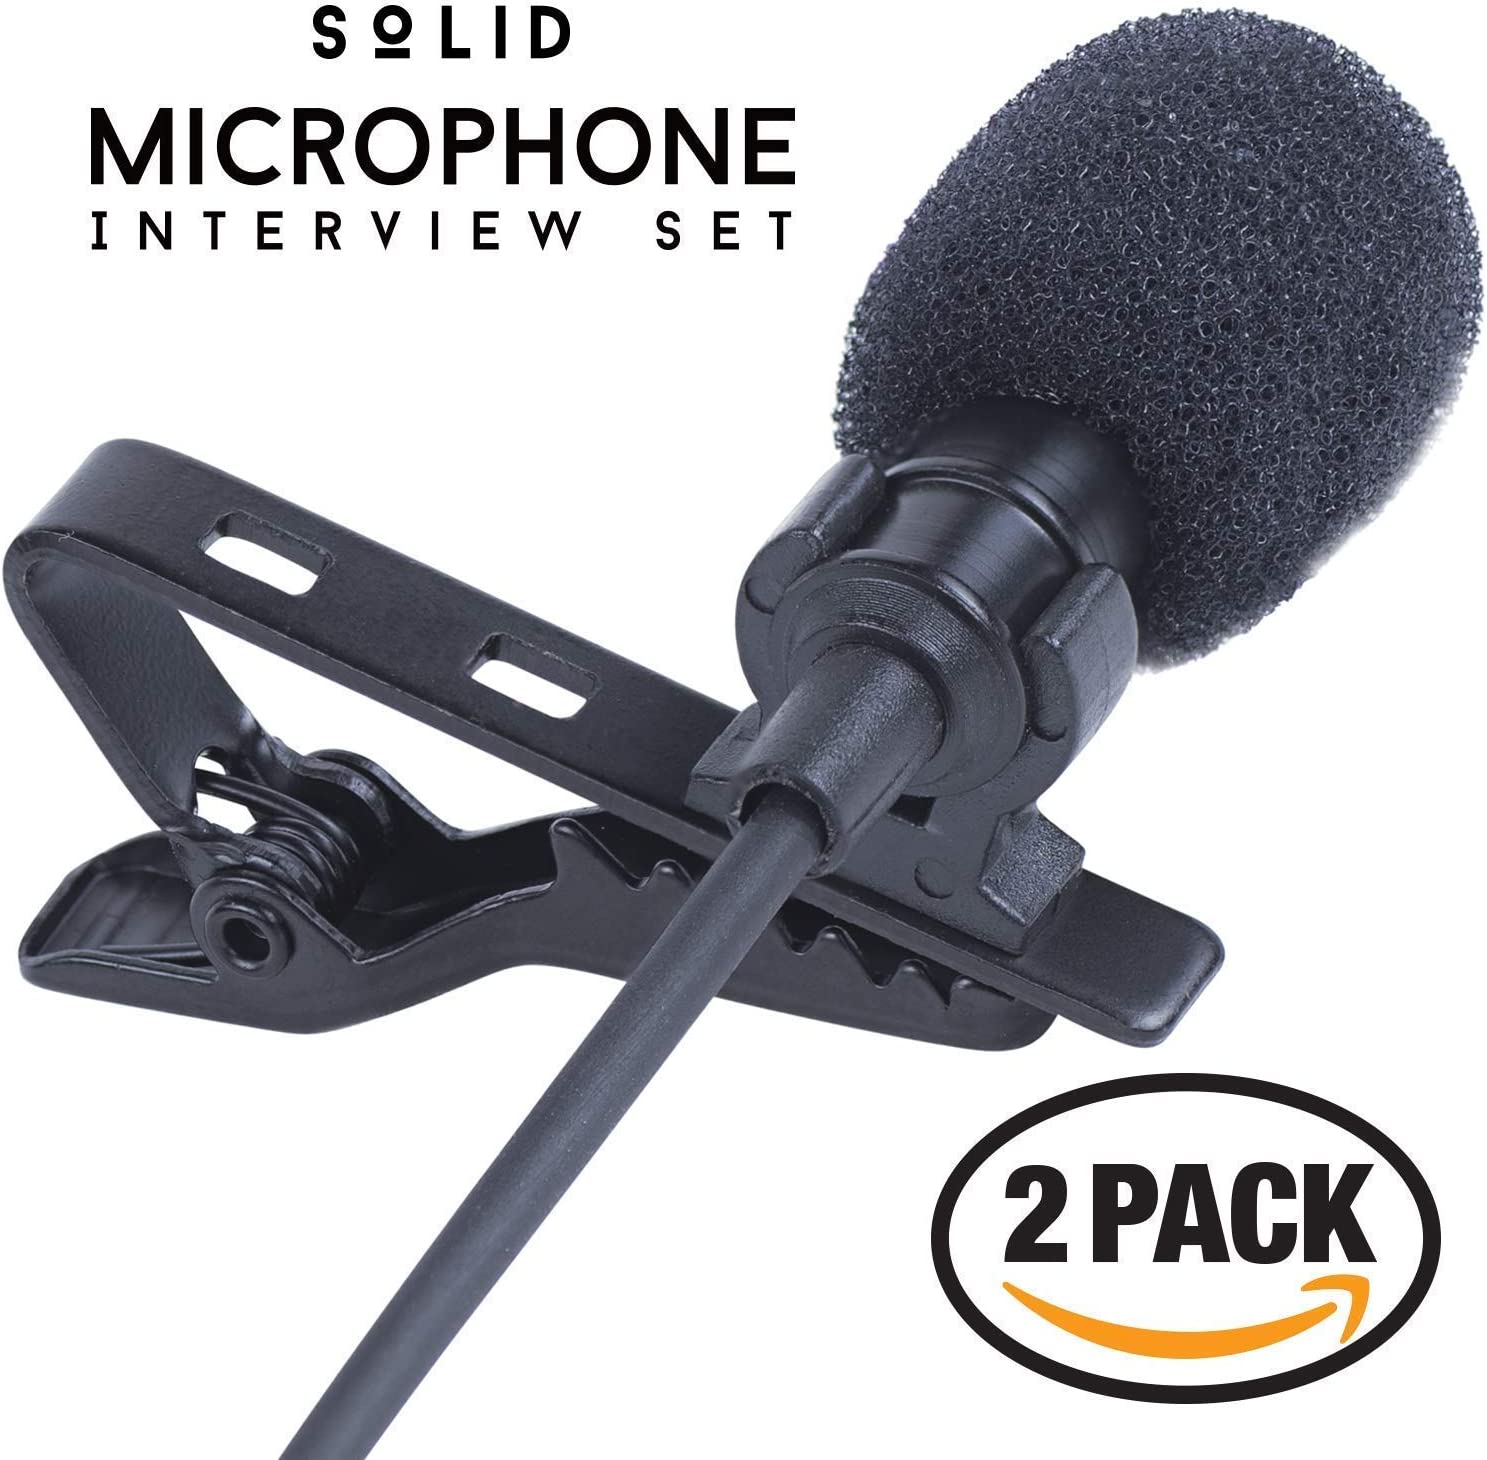 SoLID (TM) Lavalier Lapel Microphone 2 Pack Complete Set Omnidirectional Mic for Desktop PC Computer, Mac, Smartphone, iPhone, GoPro, DSLR, Camcorder for Podcast, YouTube, Vlogging, and DJs: Musical Instruments